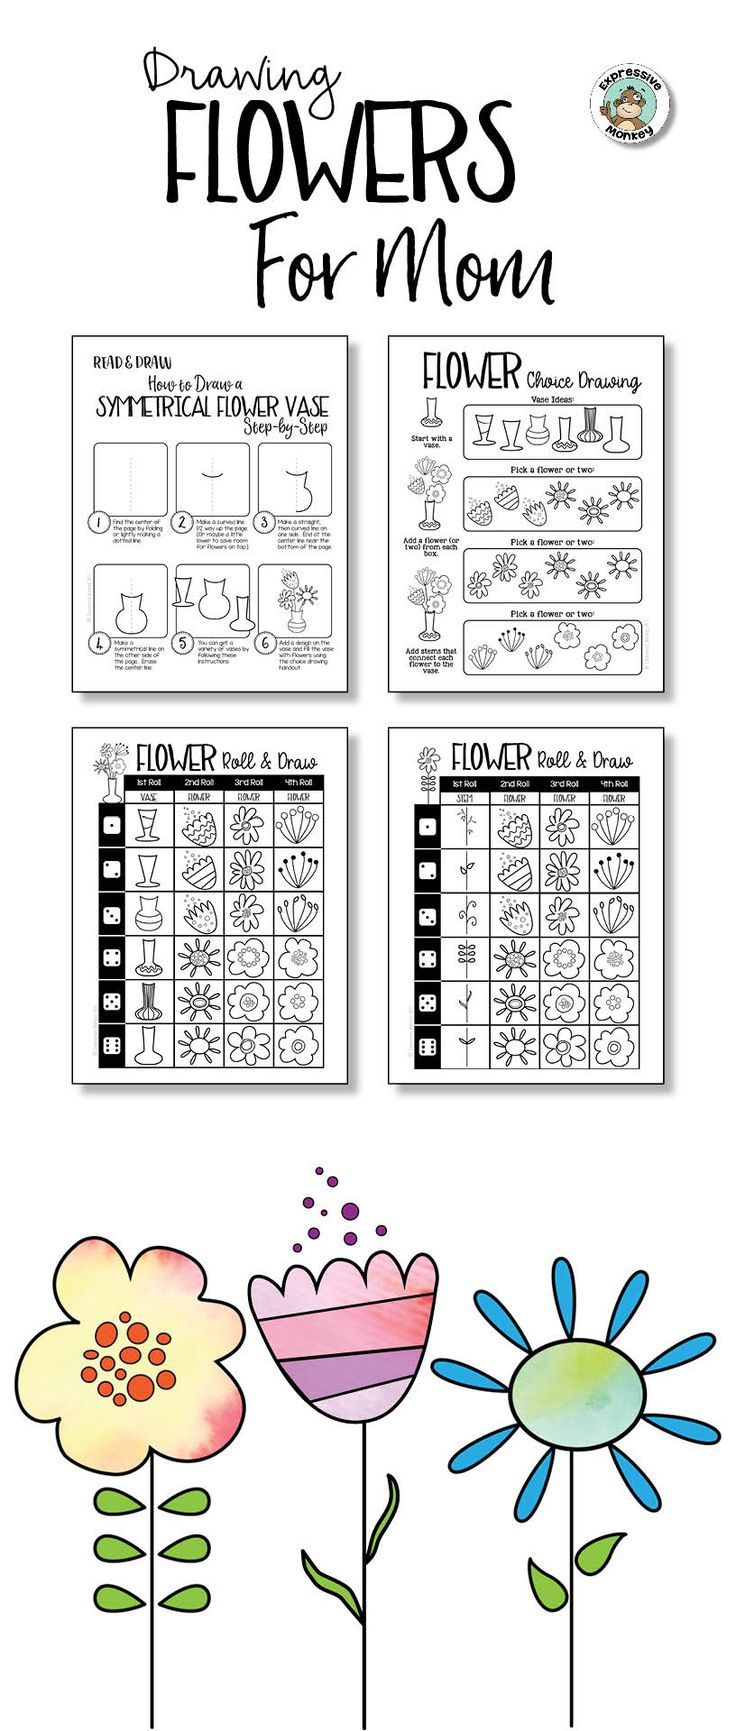 Step-by-step instructions to draw a symmetrical vase with lots of options for filling it with flowers.